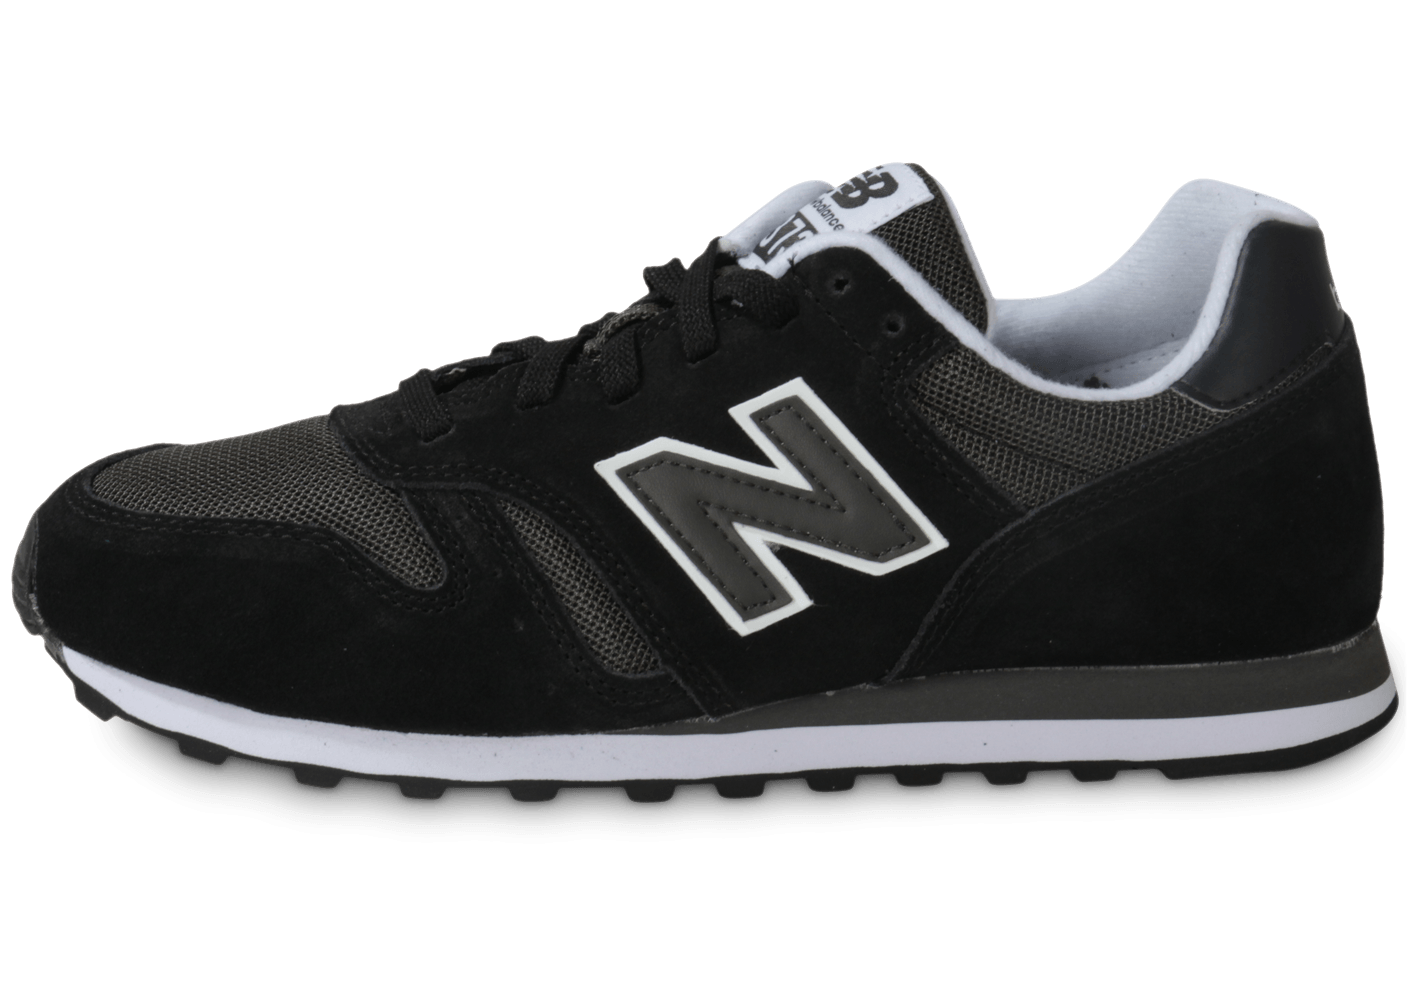 new balance ml373 mmc noire chaussures homme chausport. Black Bedroom Furniture Sets. Home Design Ideas